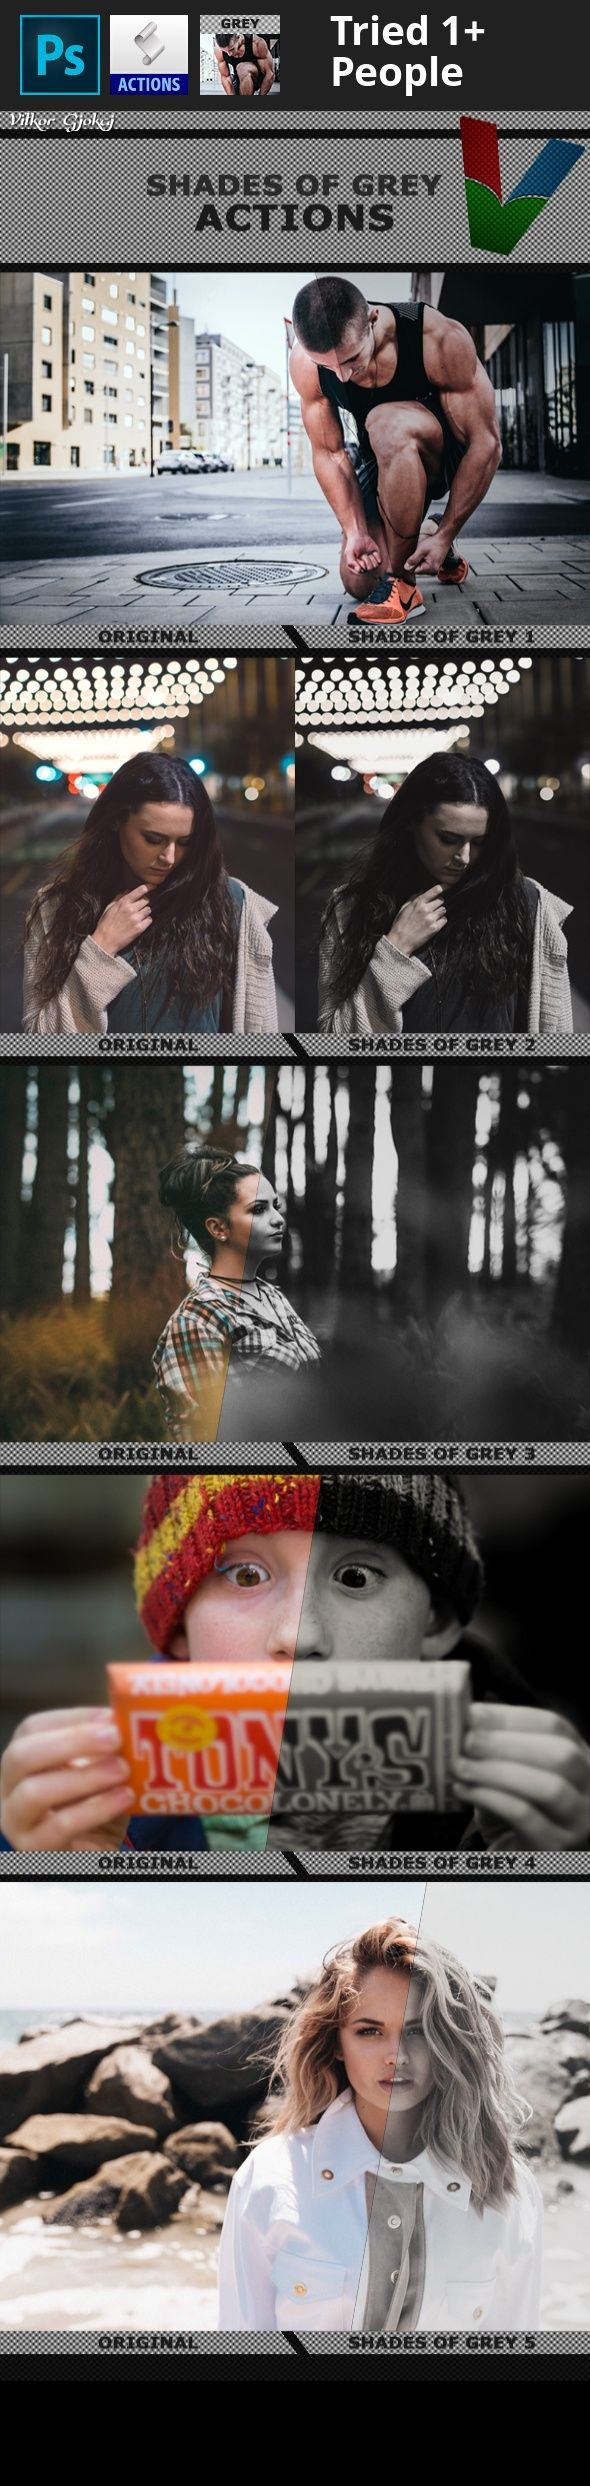 5 shades of grey, action, before and after images, camera, design filters, Fifty Shades of Grey, fit, graphic art, gray, hot, models, movies, new, photo effect, photoshop actions, professional photography, stock images, trend   5 Shades of Gray Photoshop Actions 1  	The actions are for the best graphic designers and Photographers, with the only one 'play' click to the amazing colors, very easy for use, right organisation filters in one group, where you can adjust colors. Very observable...